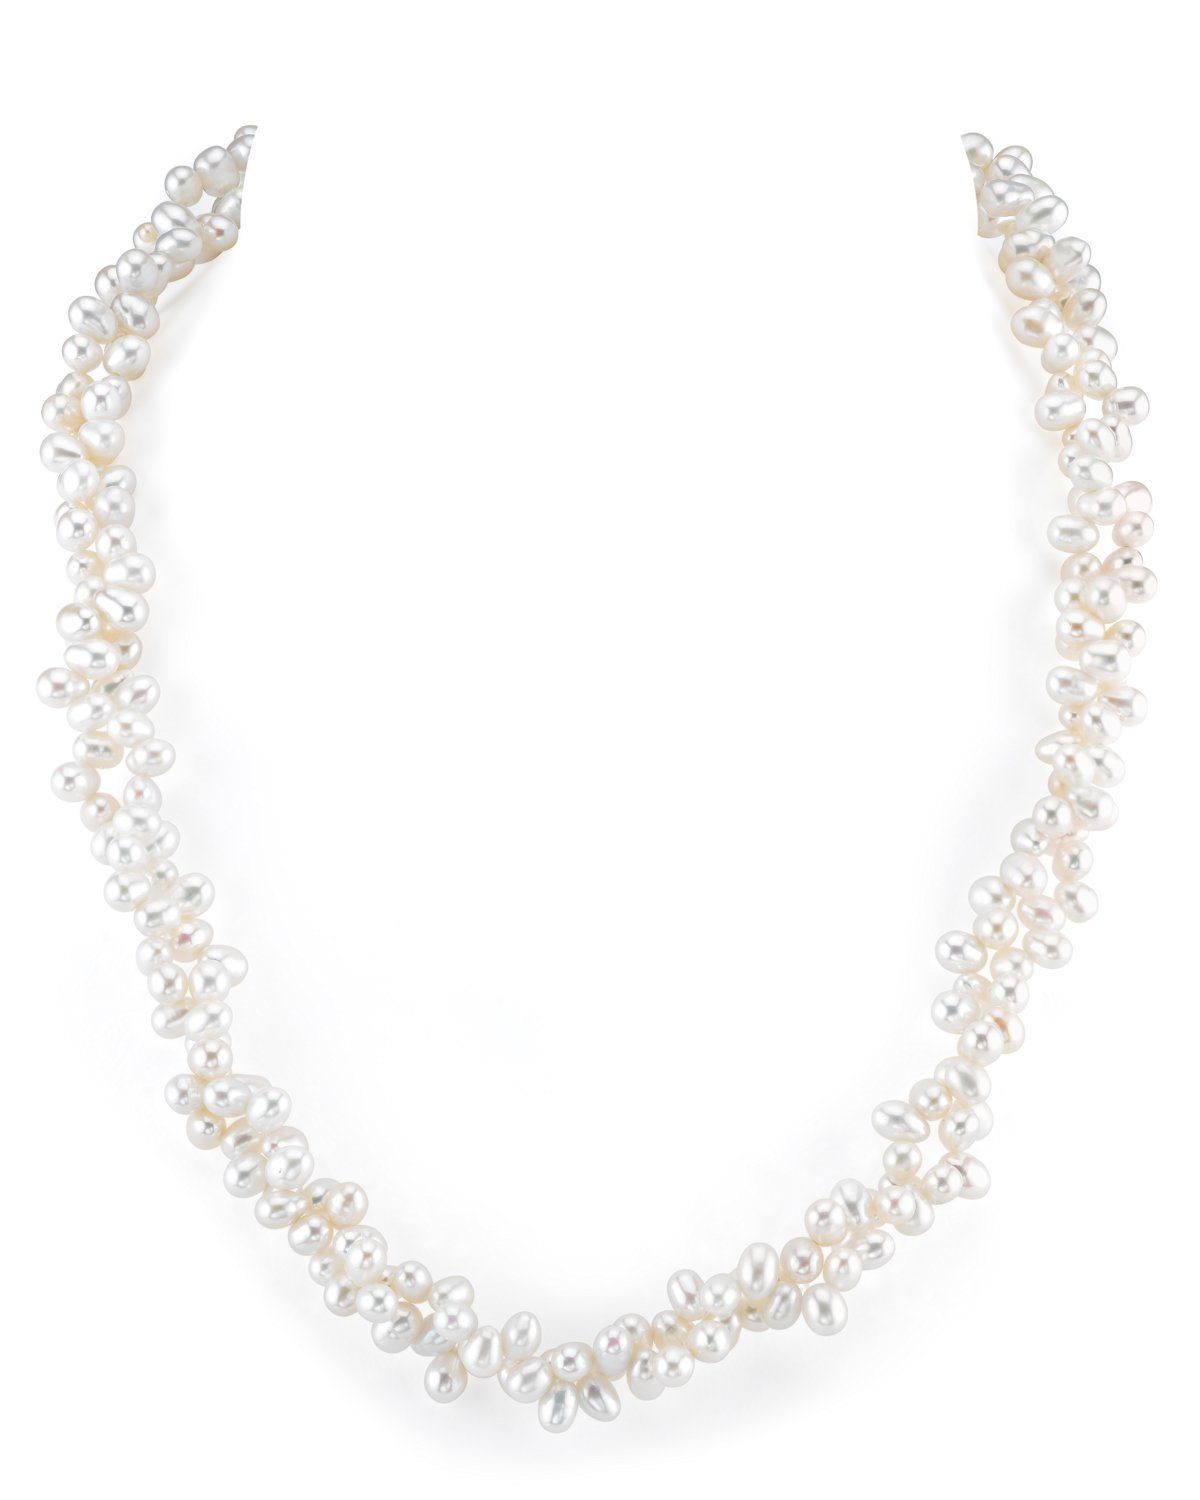 4-5mm Genuine White Freshwater Cultured Pearl Necklace for Women